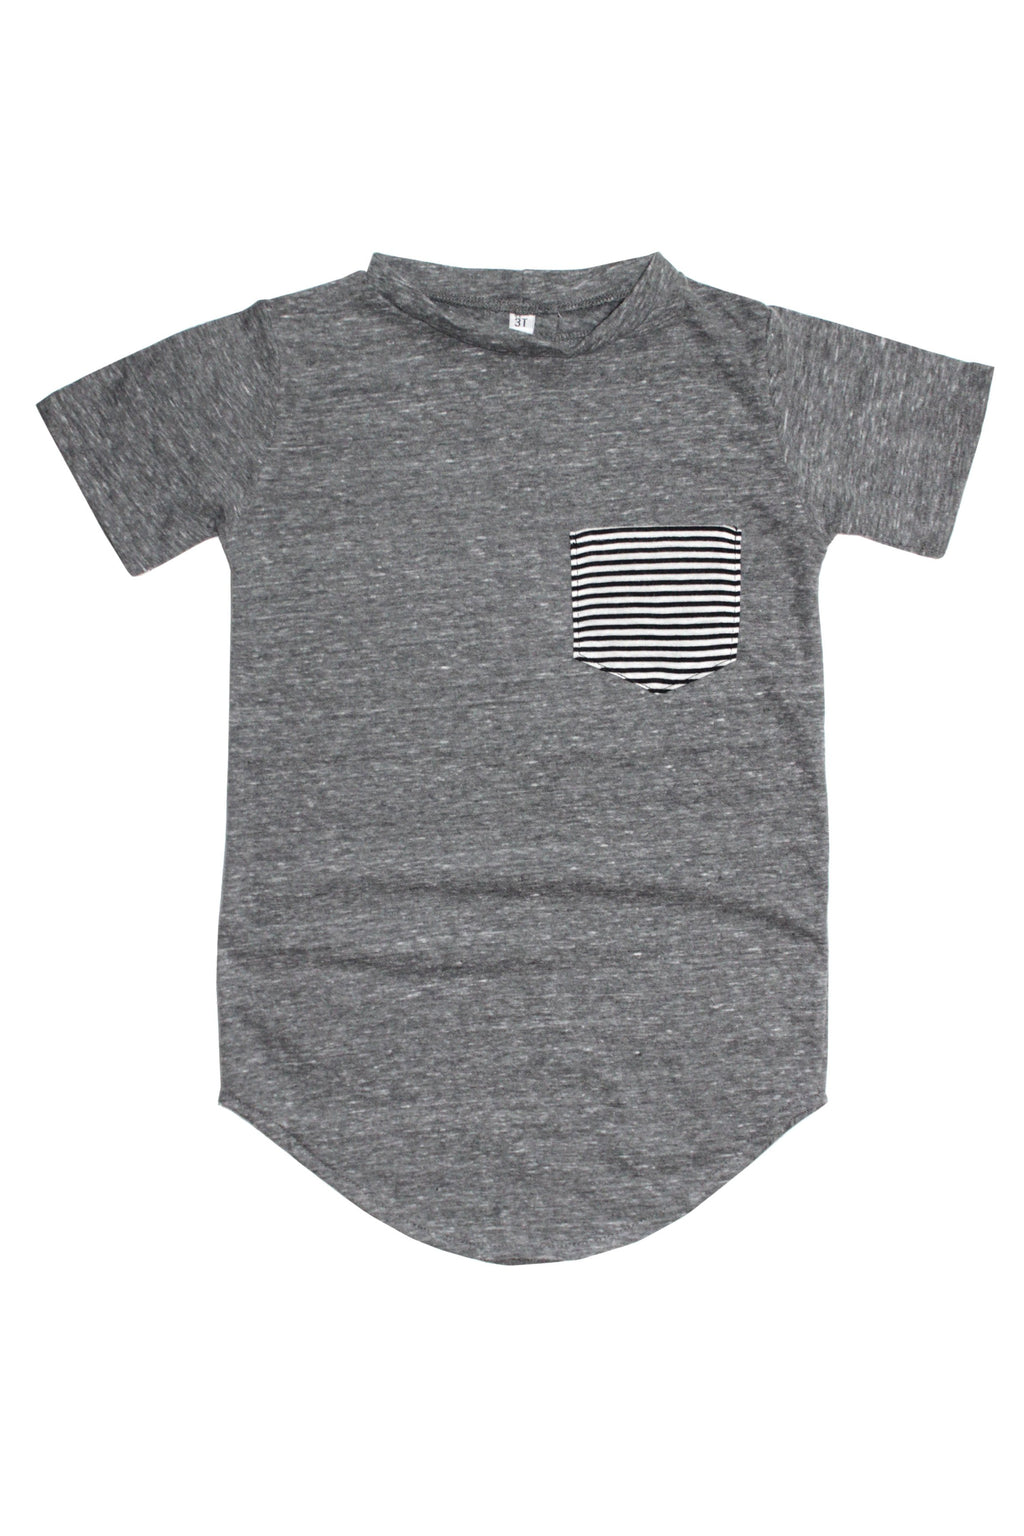 Tail Pocket Tee | Tri-Blend Grey & B/W Striped Pocket